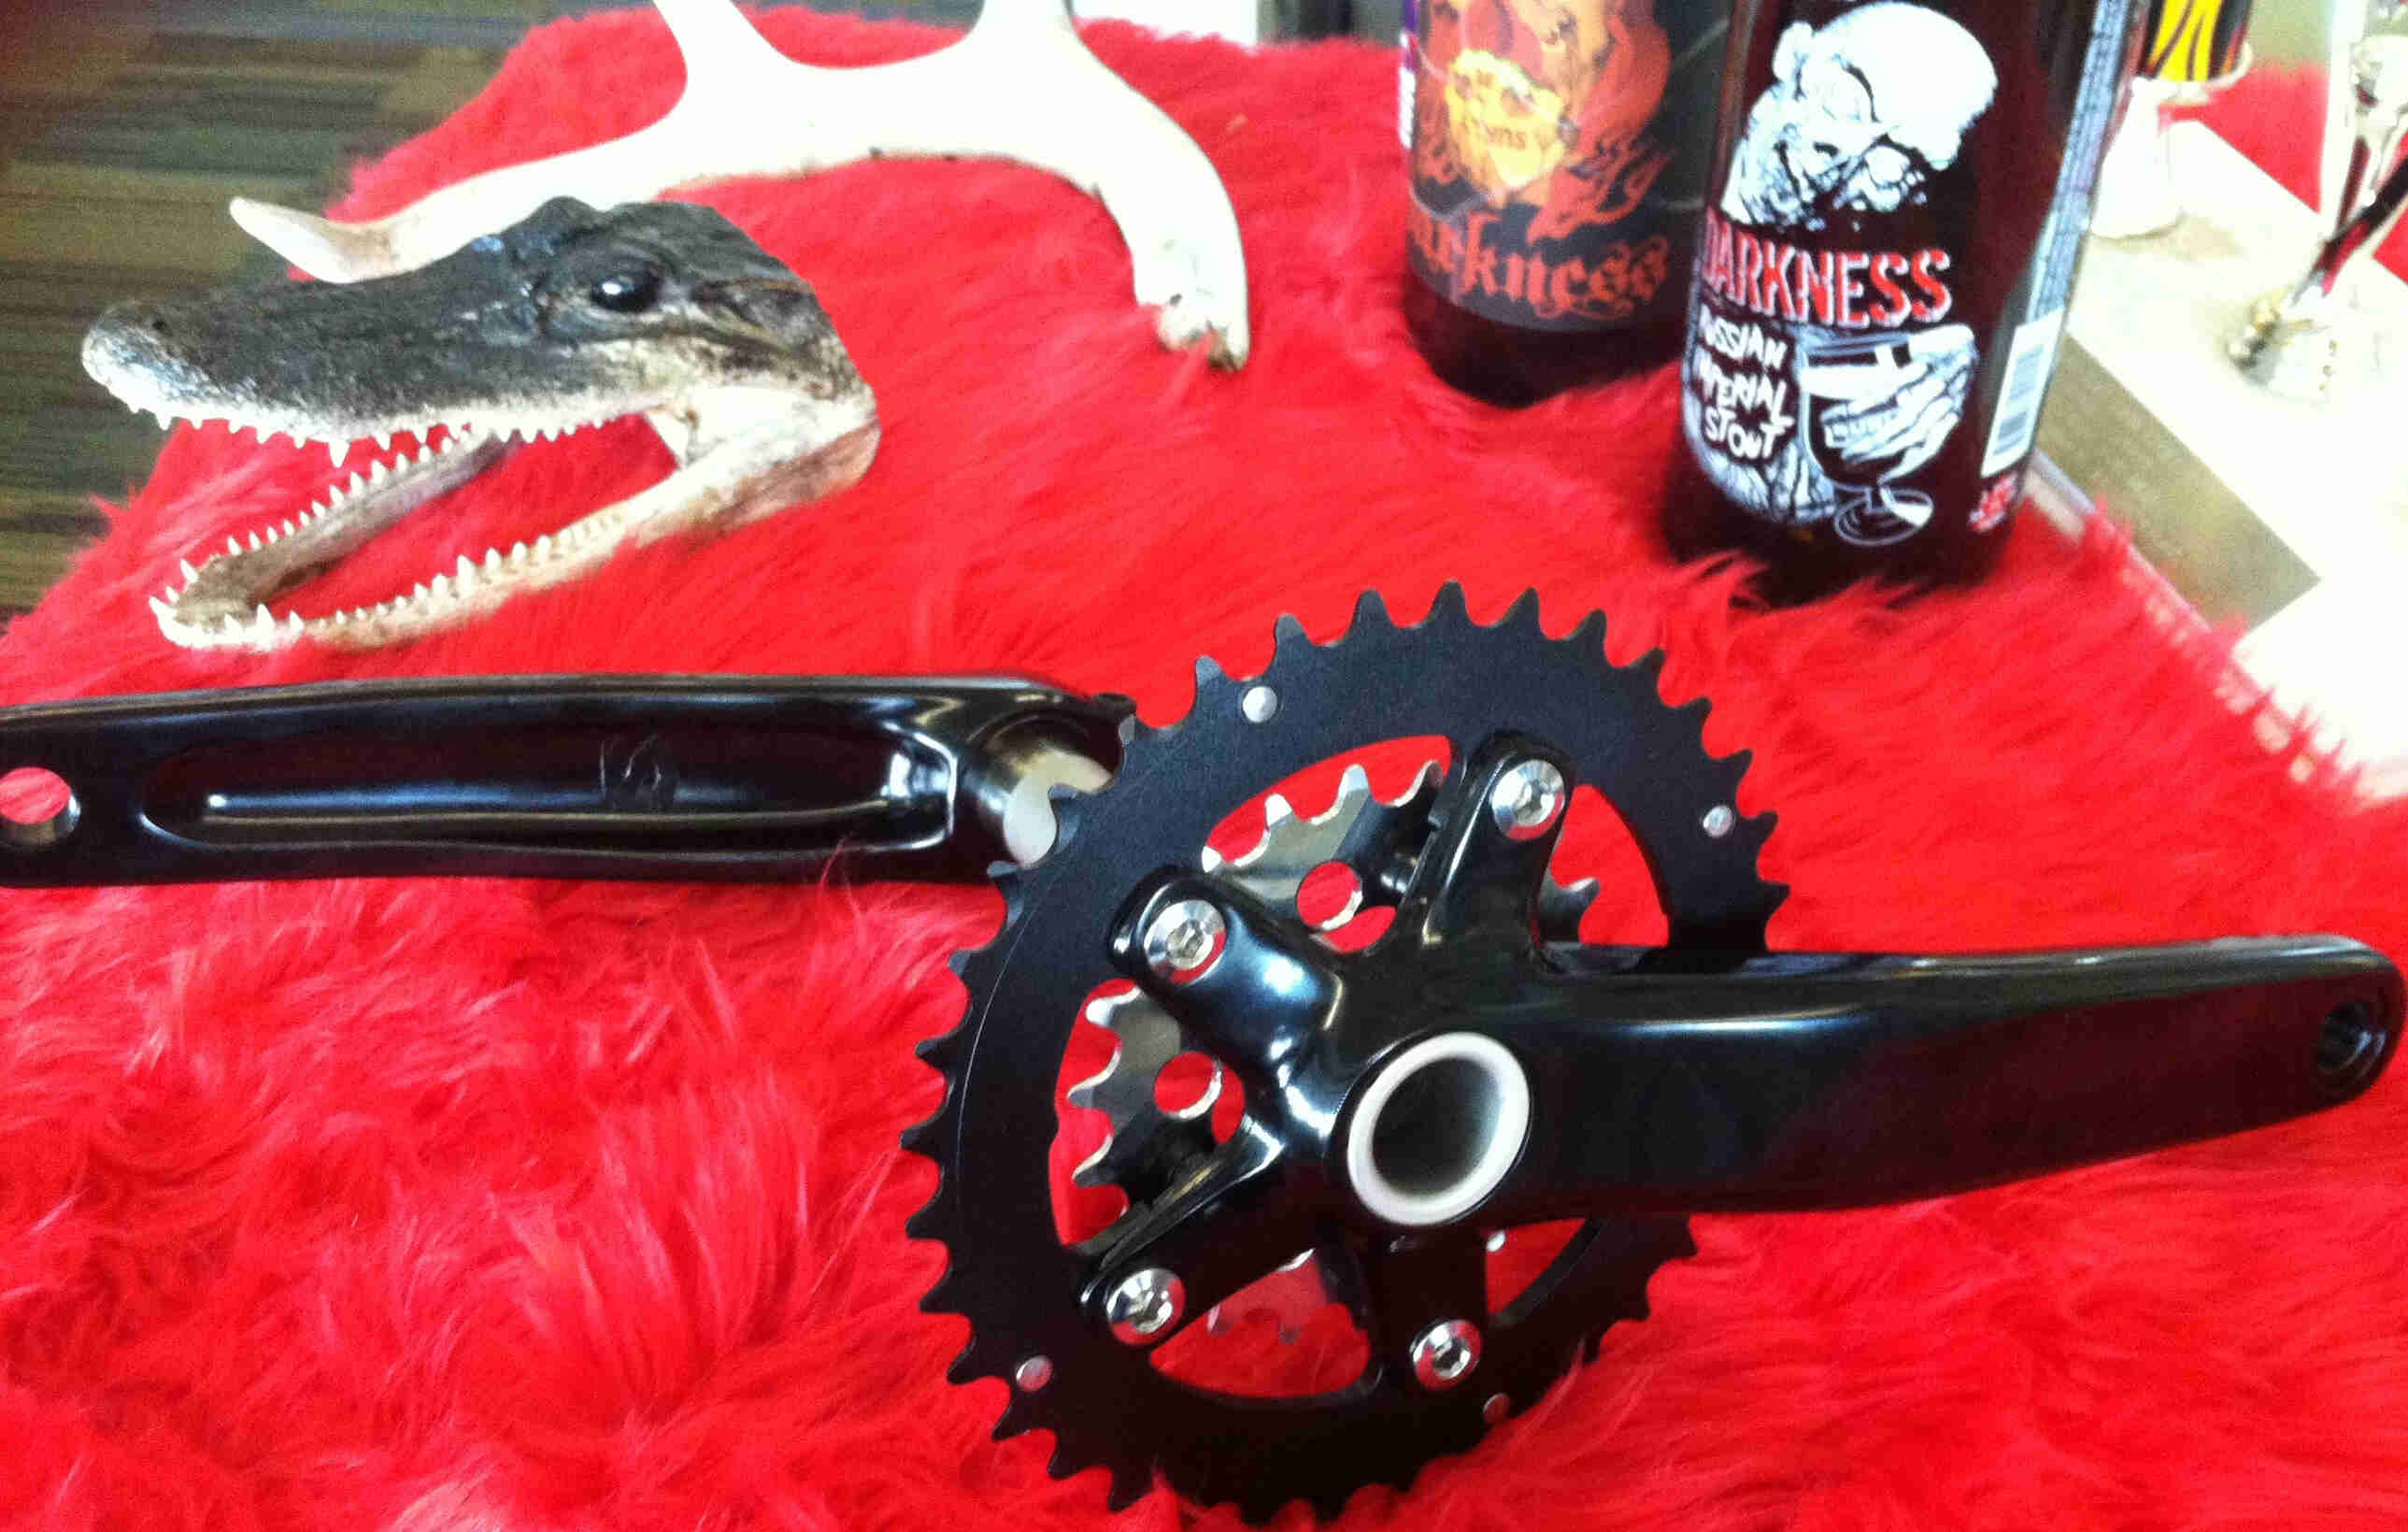 Side view of a Surly O.D bike crankset, on a red table with an alligator head and cans in the background